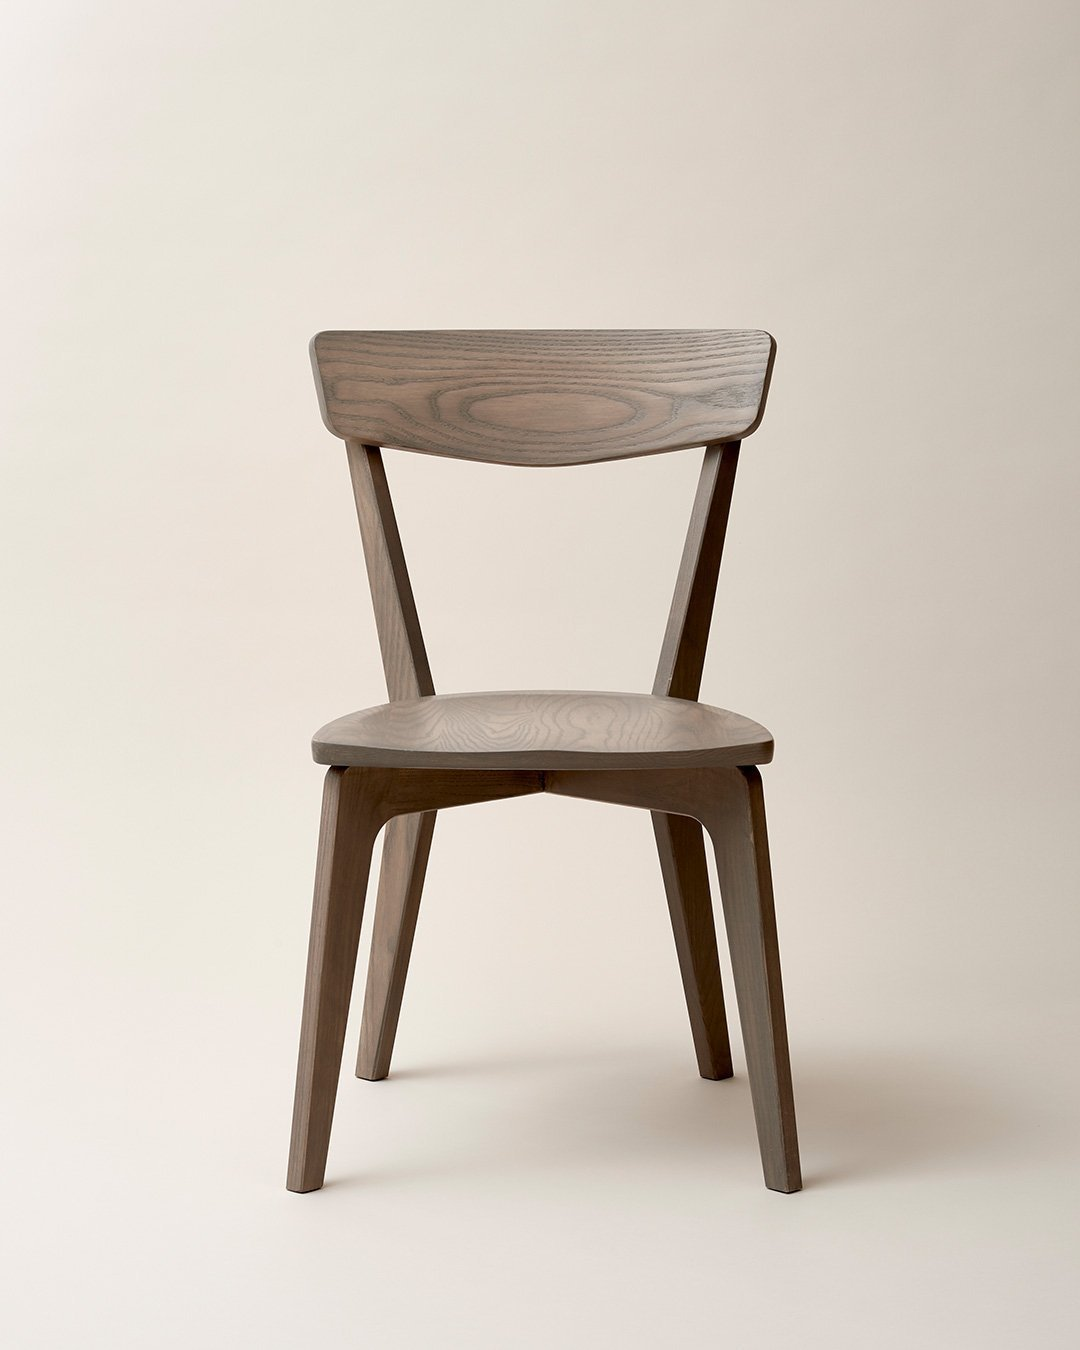 Farmhouse Pottery Bistro Dining Chair - Grey Farmhouse Pottery